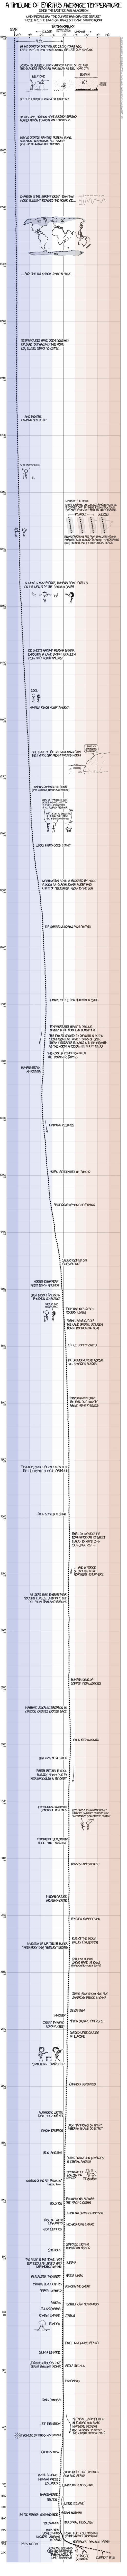 XKCD Earth's Average Temperature